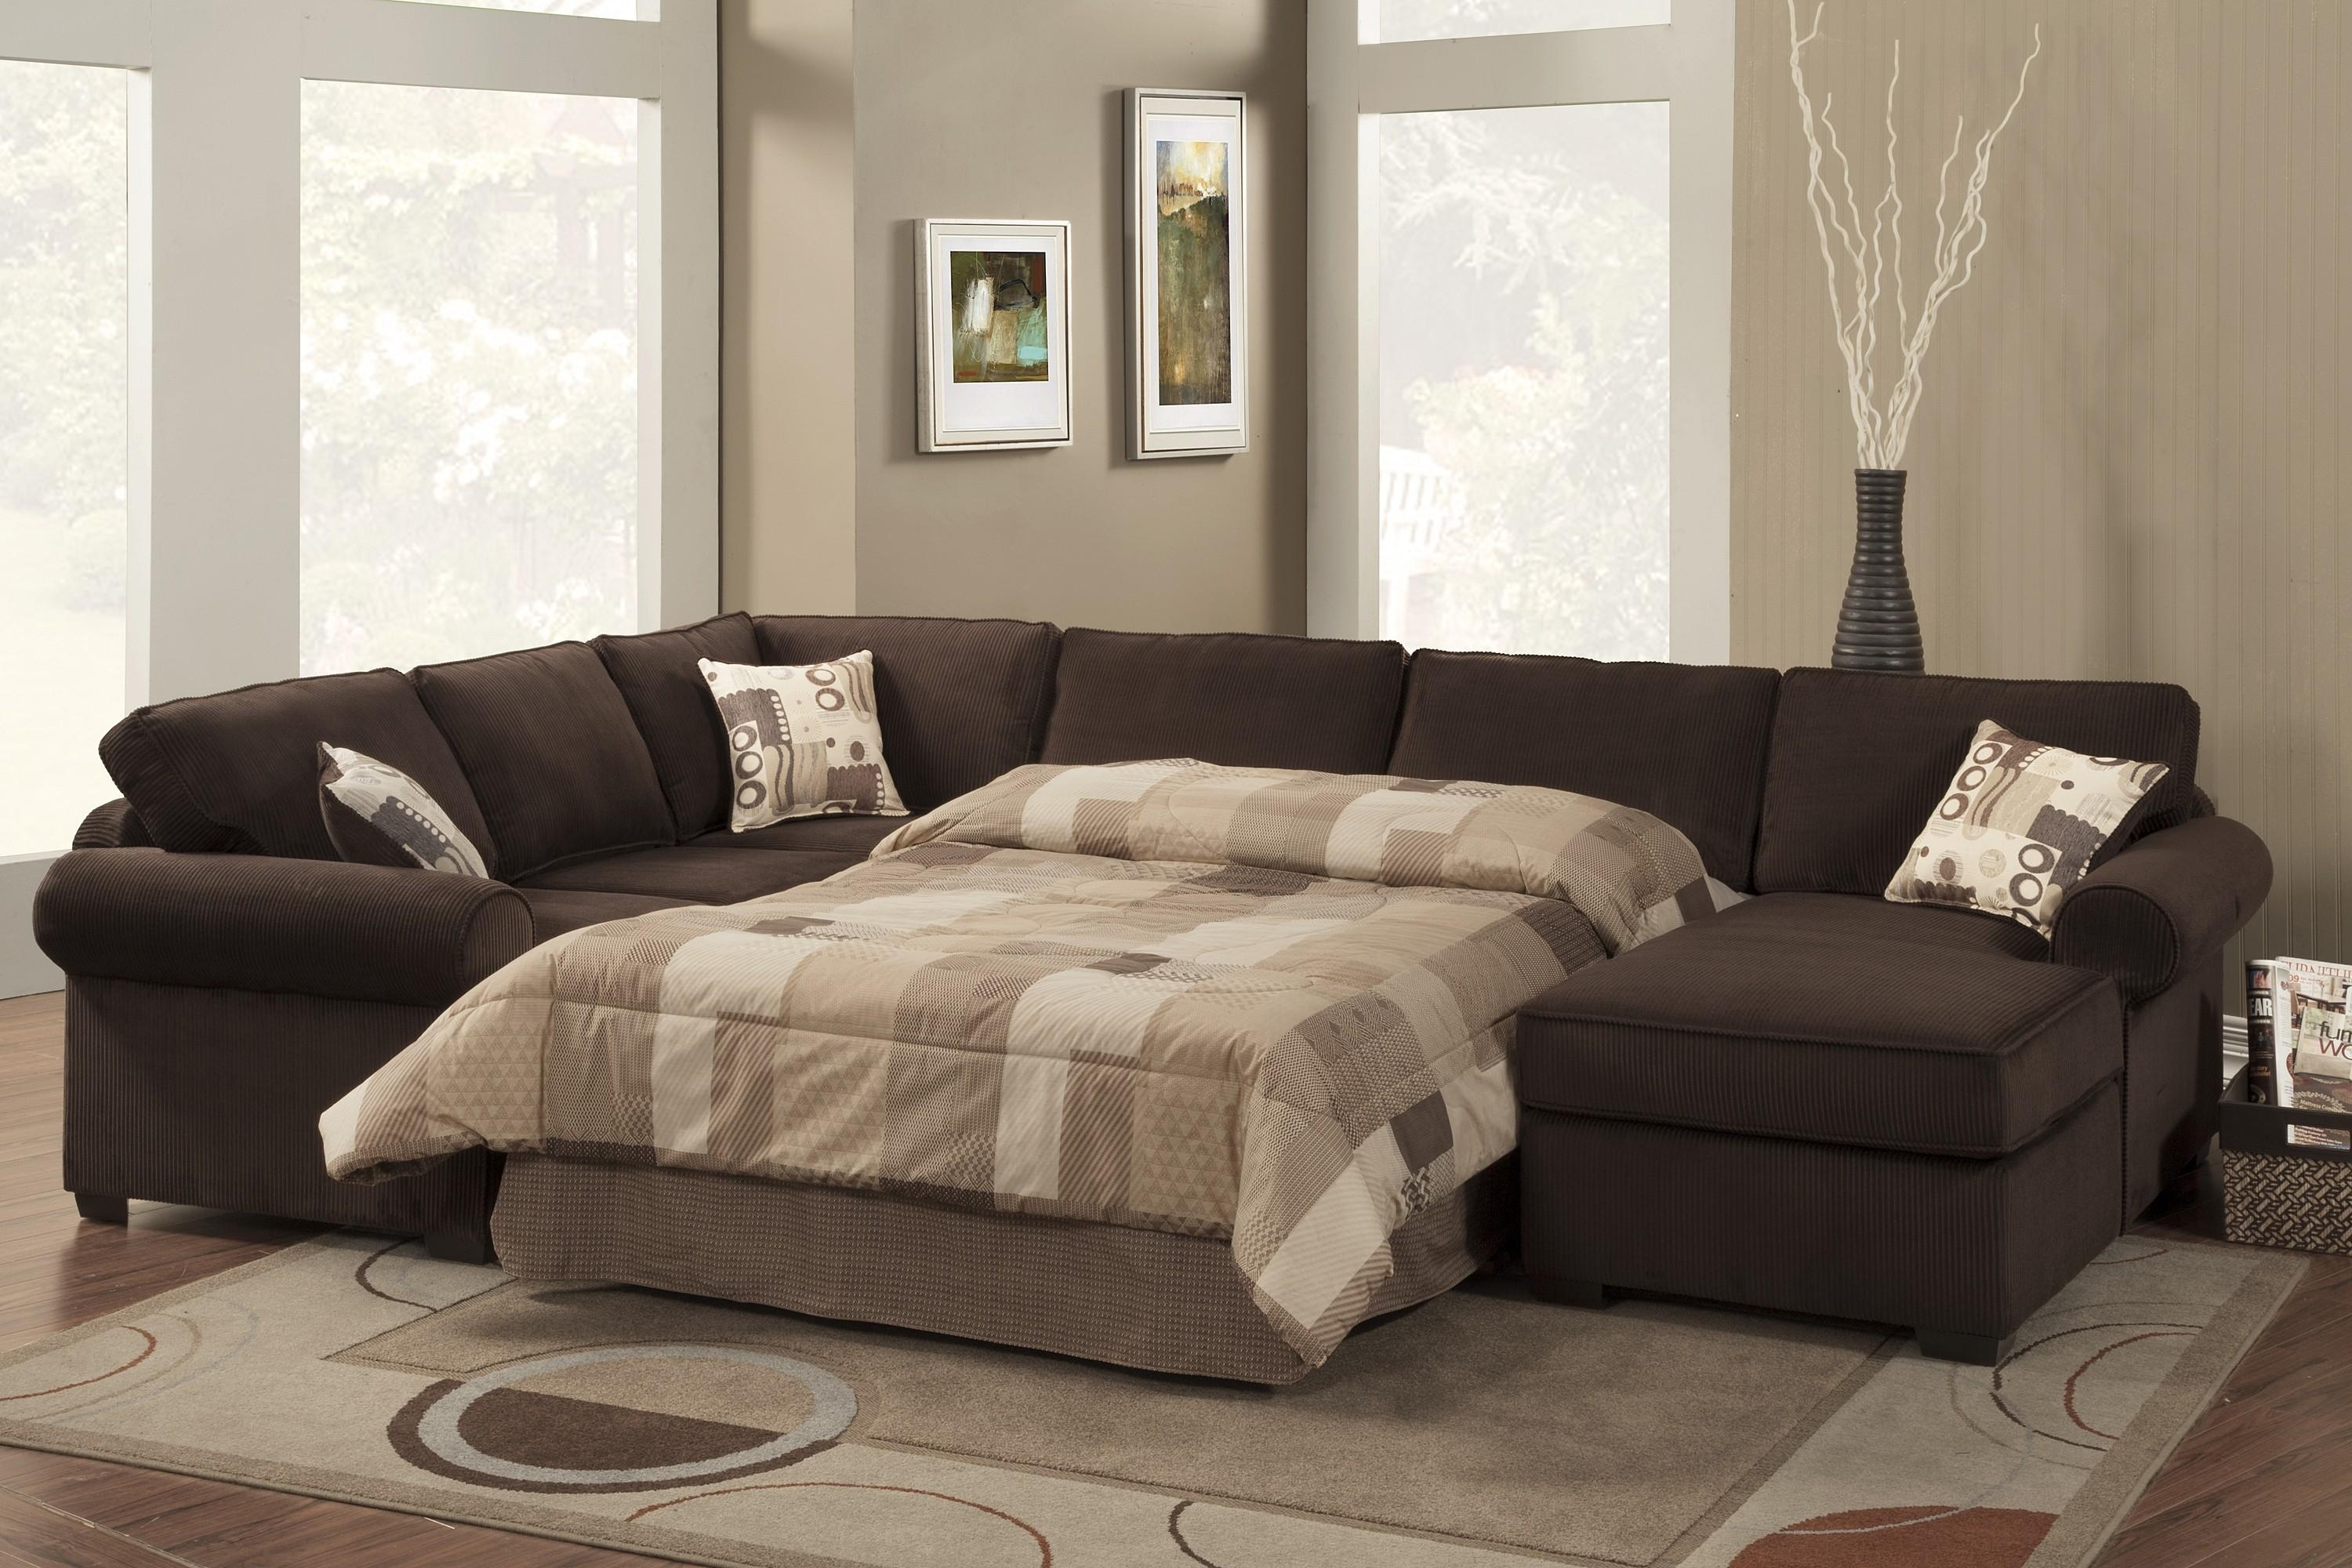 Sofa: Tufted Sectional Sofa | Velvet Tufted Sofa | Deep Seated For Tufted Sectional With Chaise (Image 17 of 20)